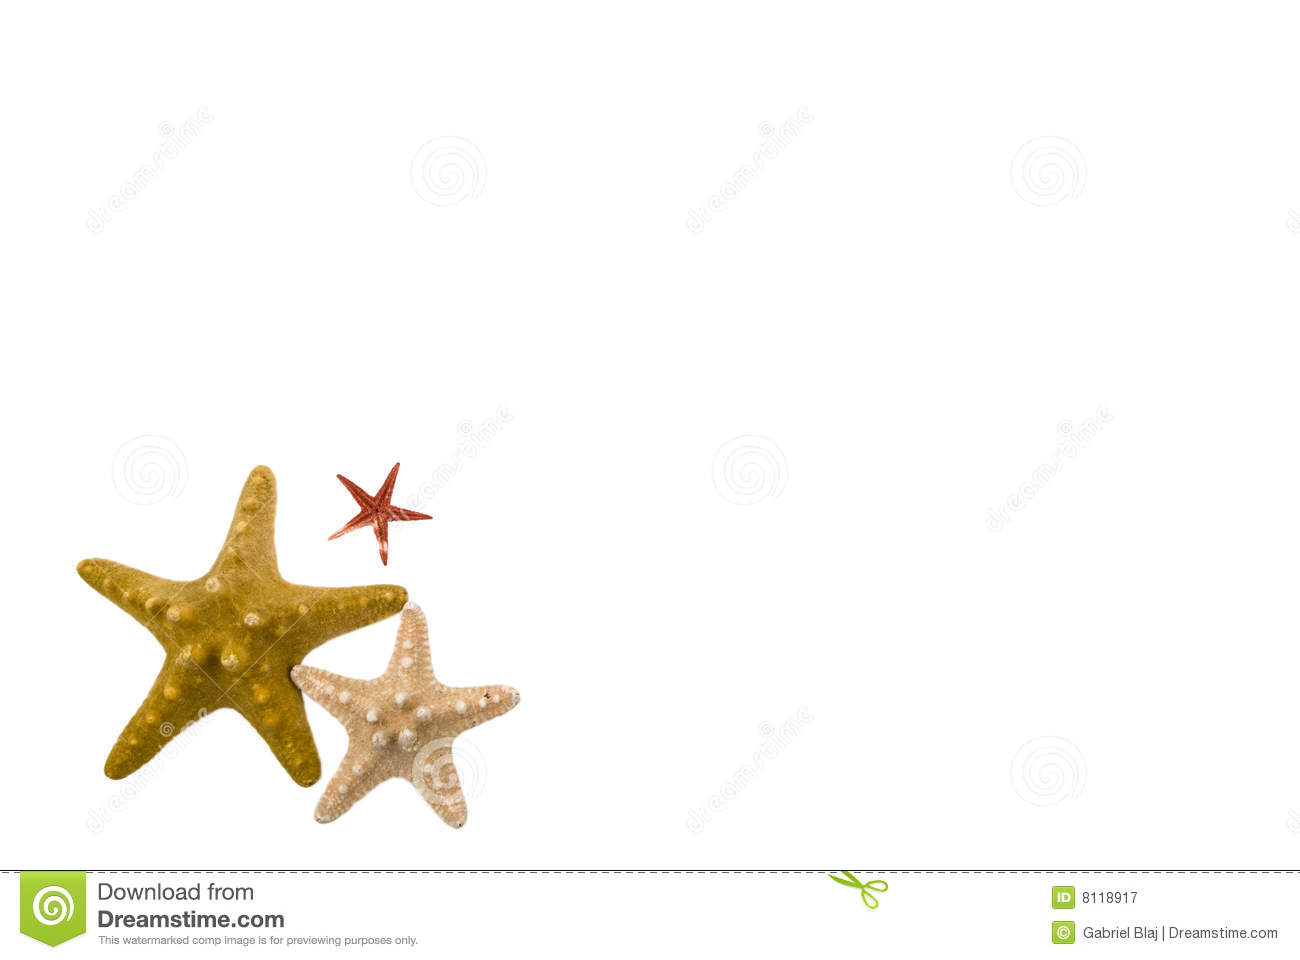 Starfish frame stock image. Image of image, objects, creative - 8118917